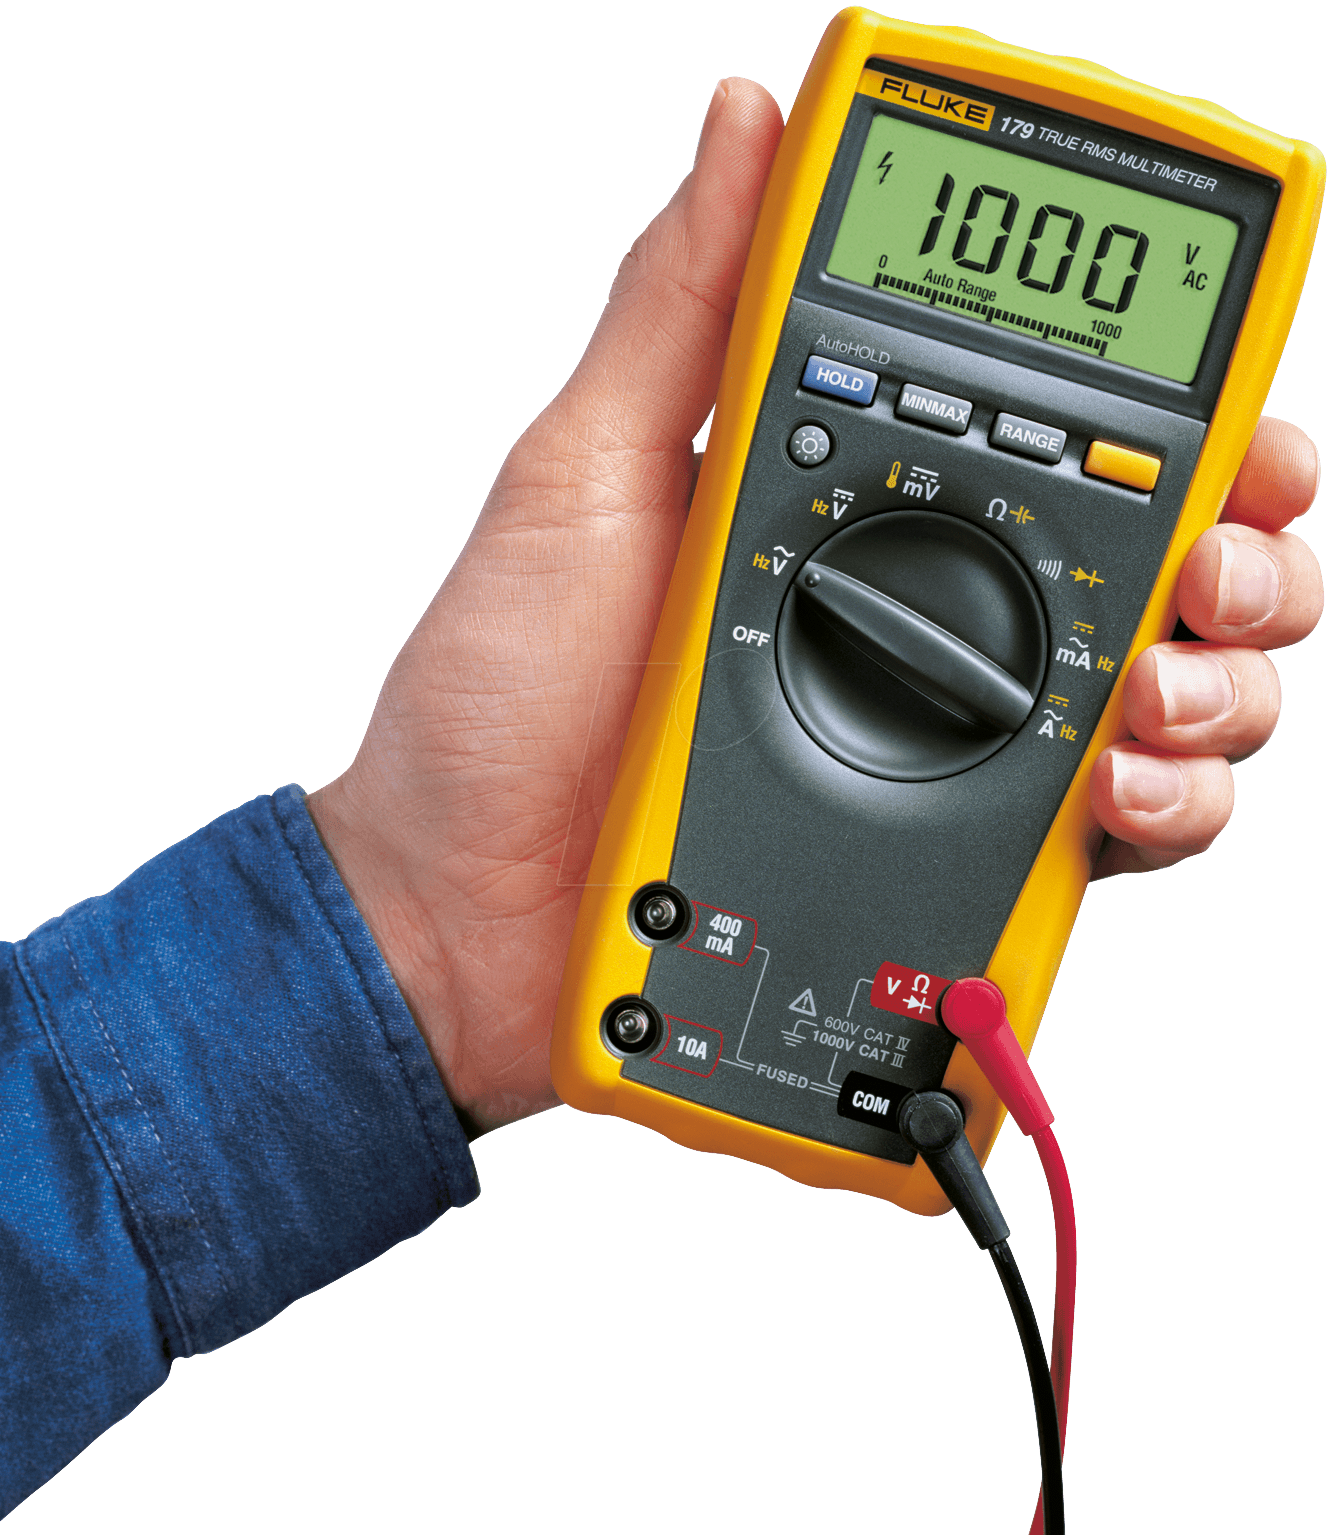 Fluke Infrared Thermometer Atten Aps3003s Aps3005s Regulated Dc Power Supply